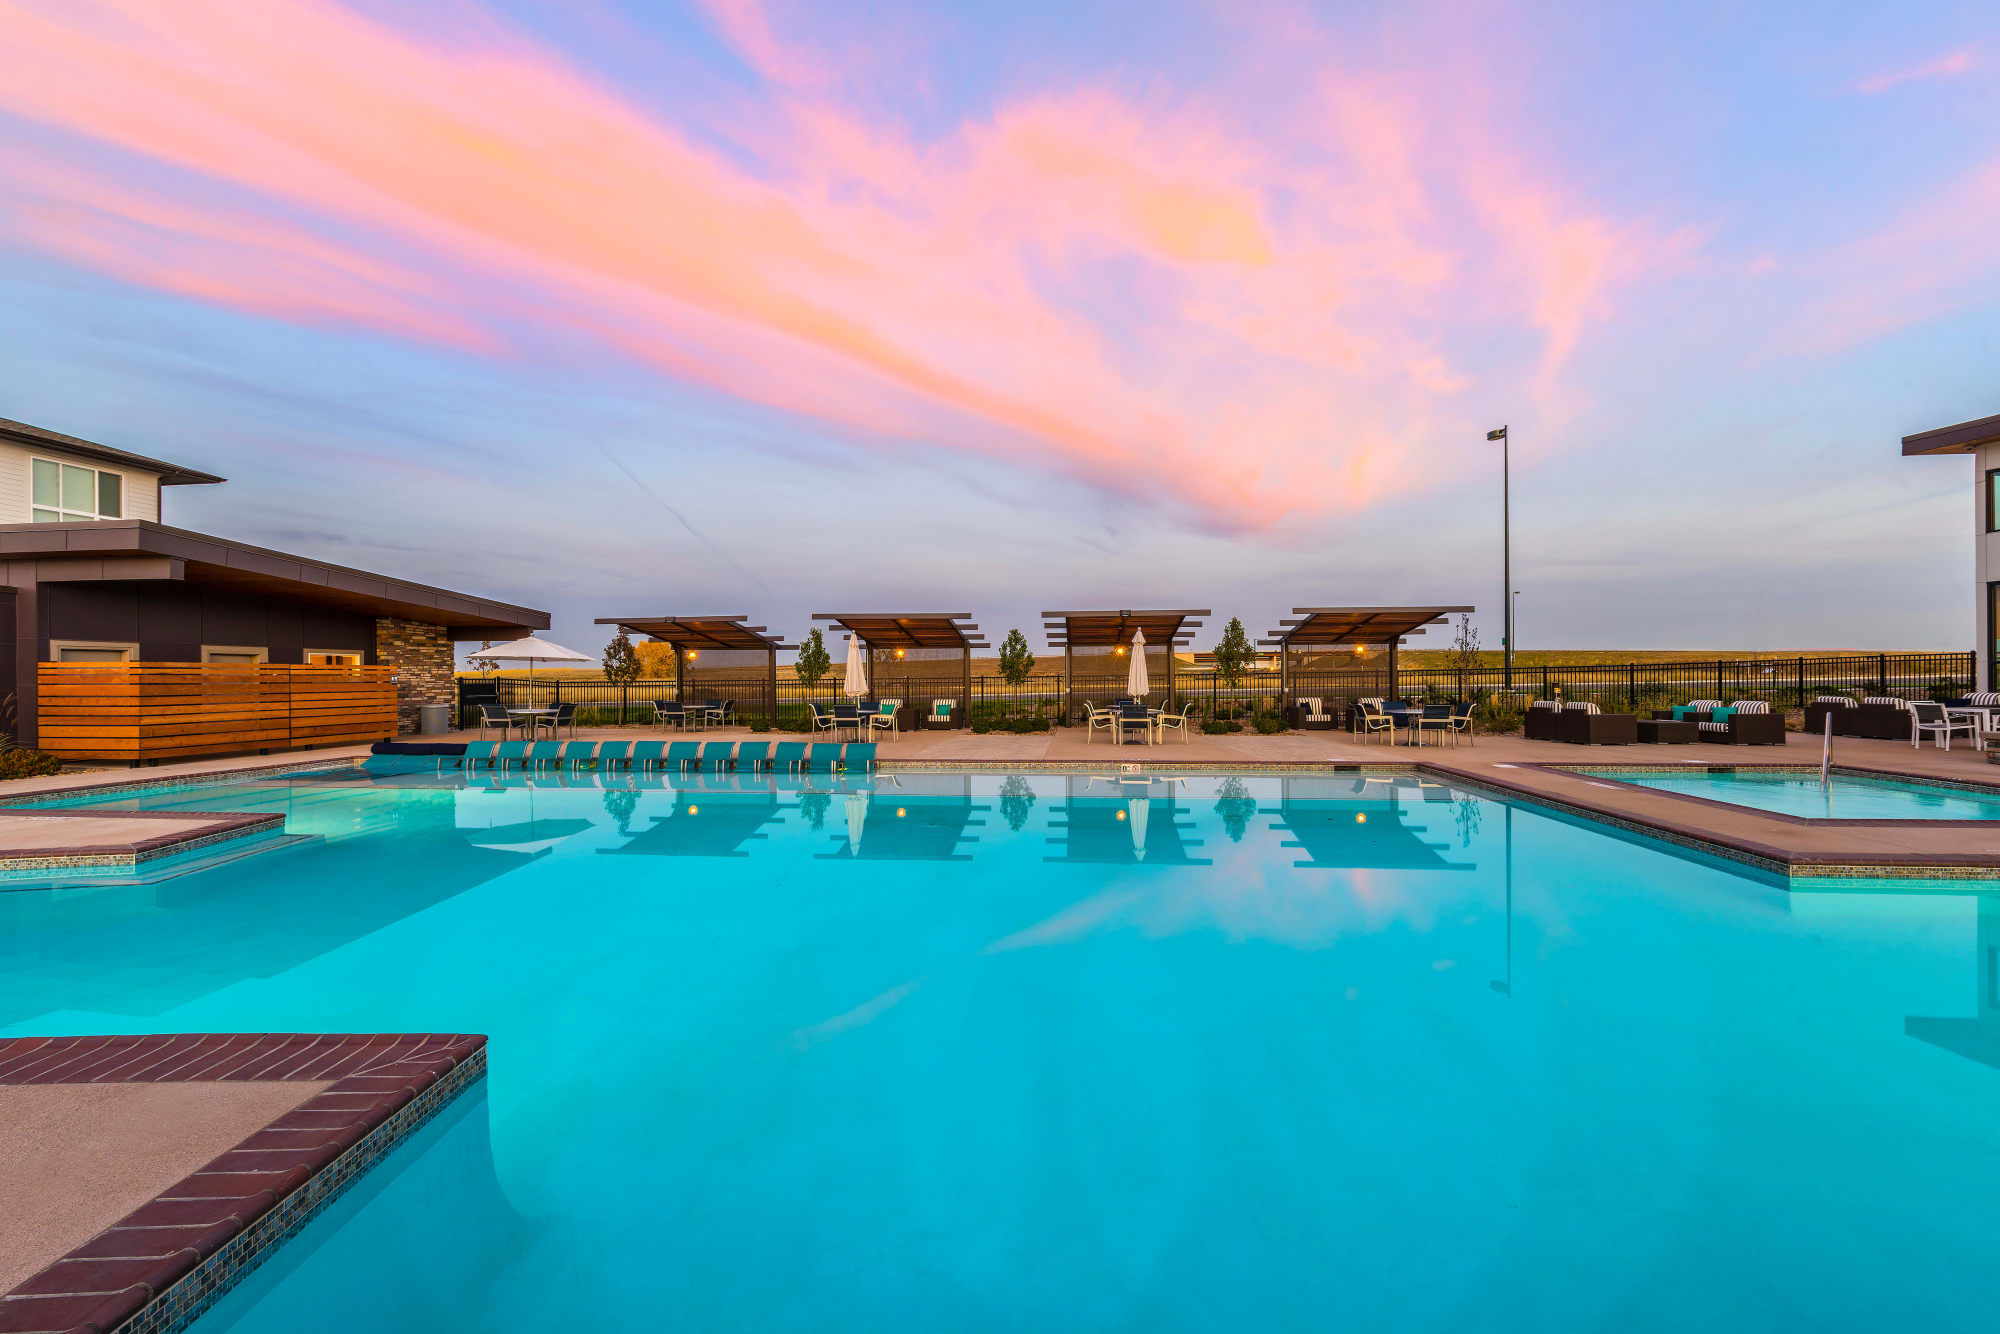 The swimming pool at Strata Apartments during a beautiful Colorado sunset